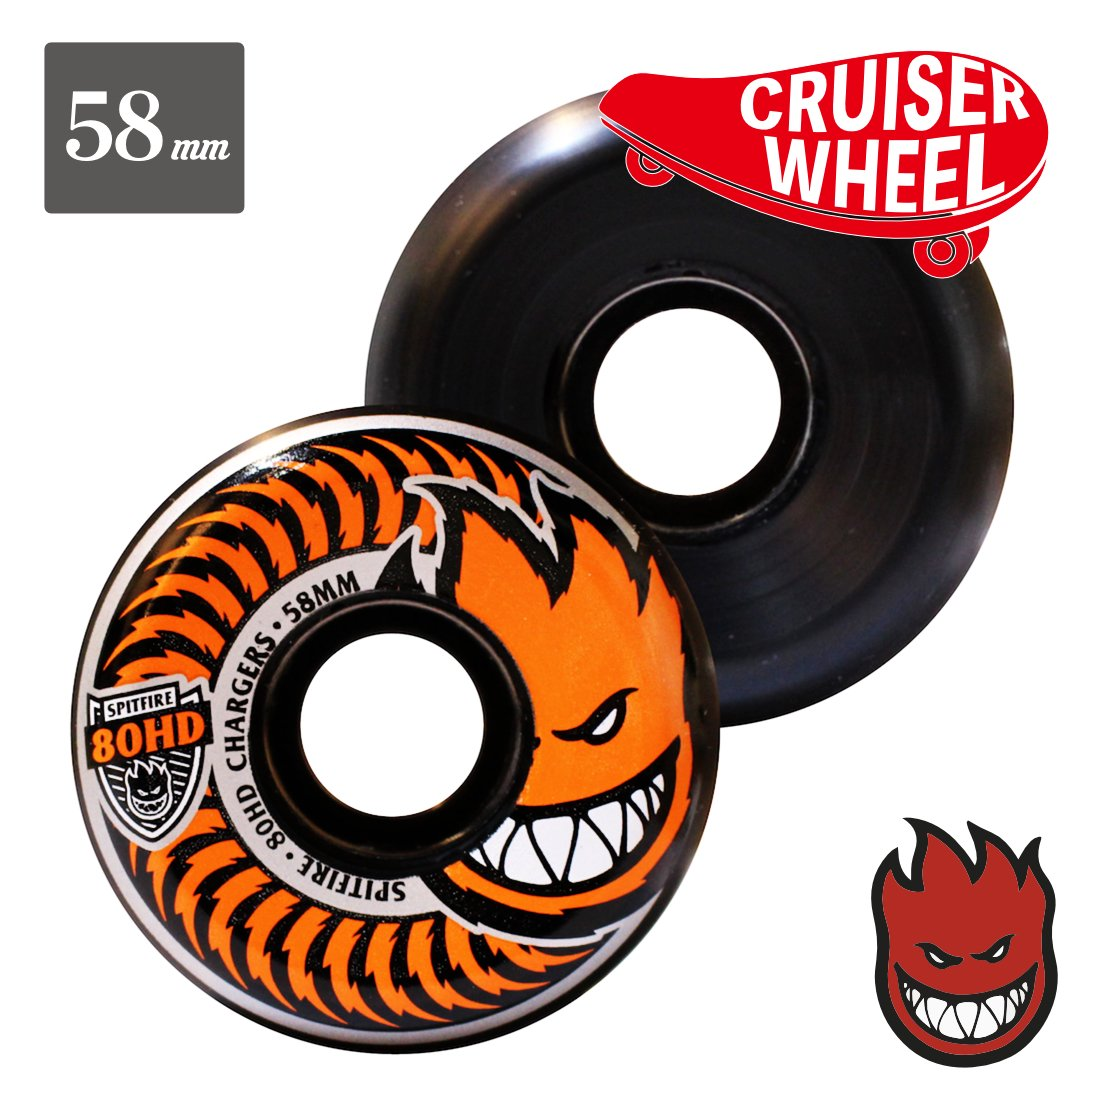 【SPITFIRE WHEEL】80HD Chargers